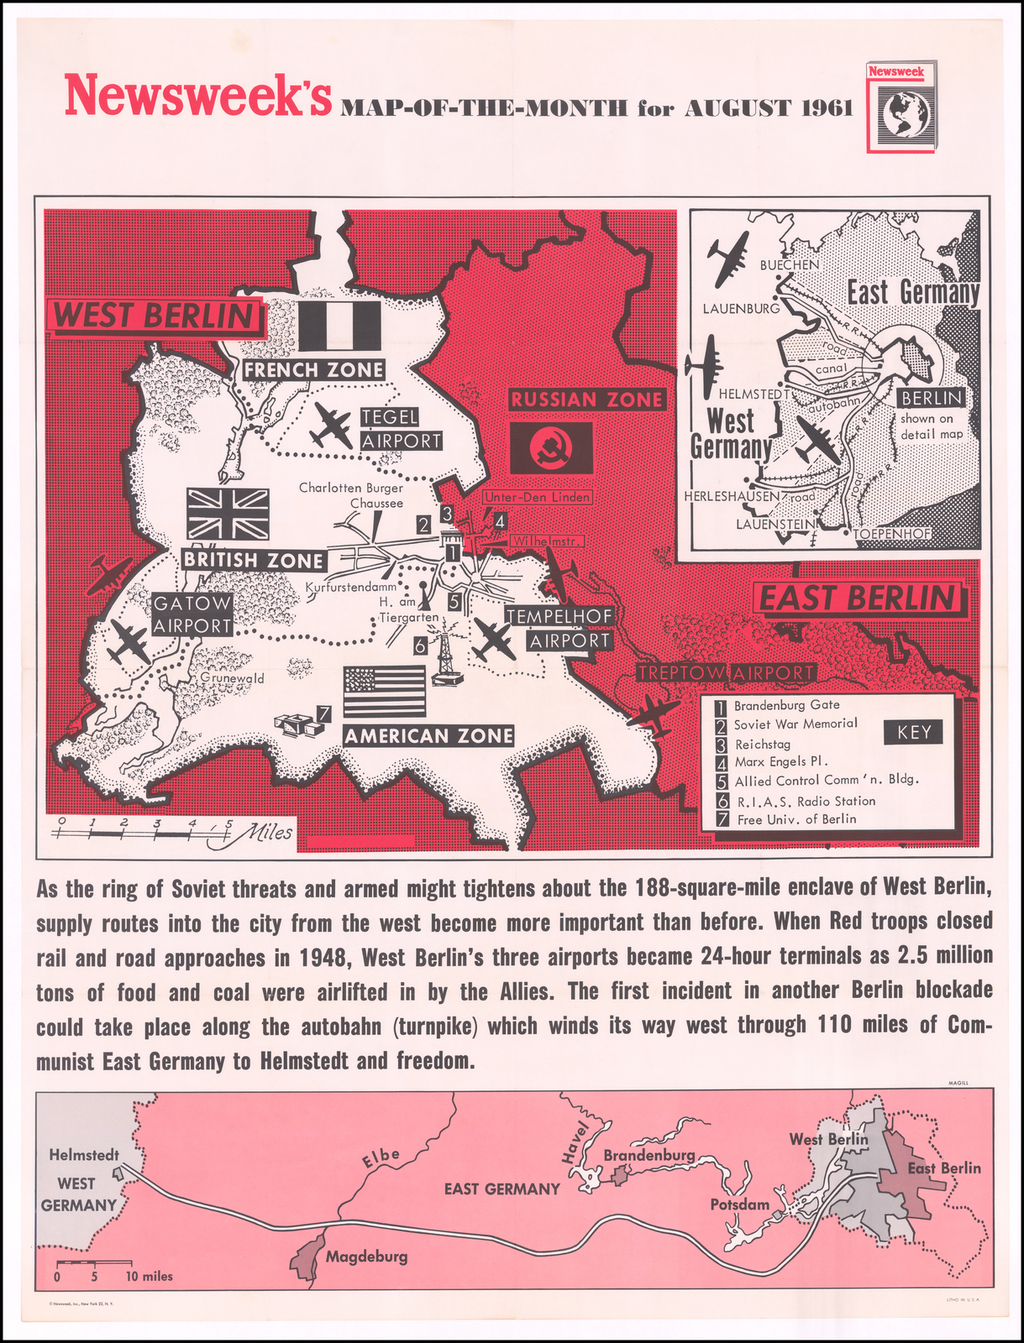 [August 1961: The Berlin Crisis and Foreshadowing Construction of the Berlin Wall]  By Newsweek